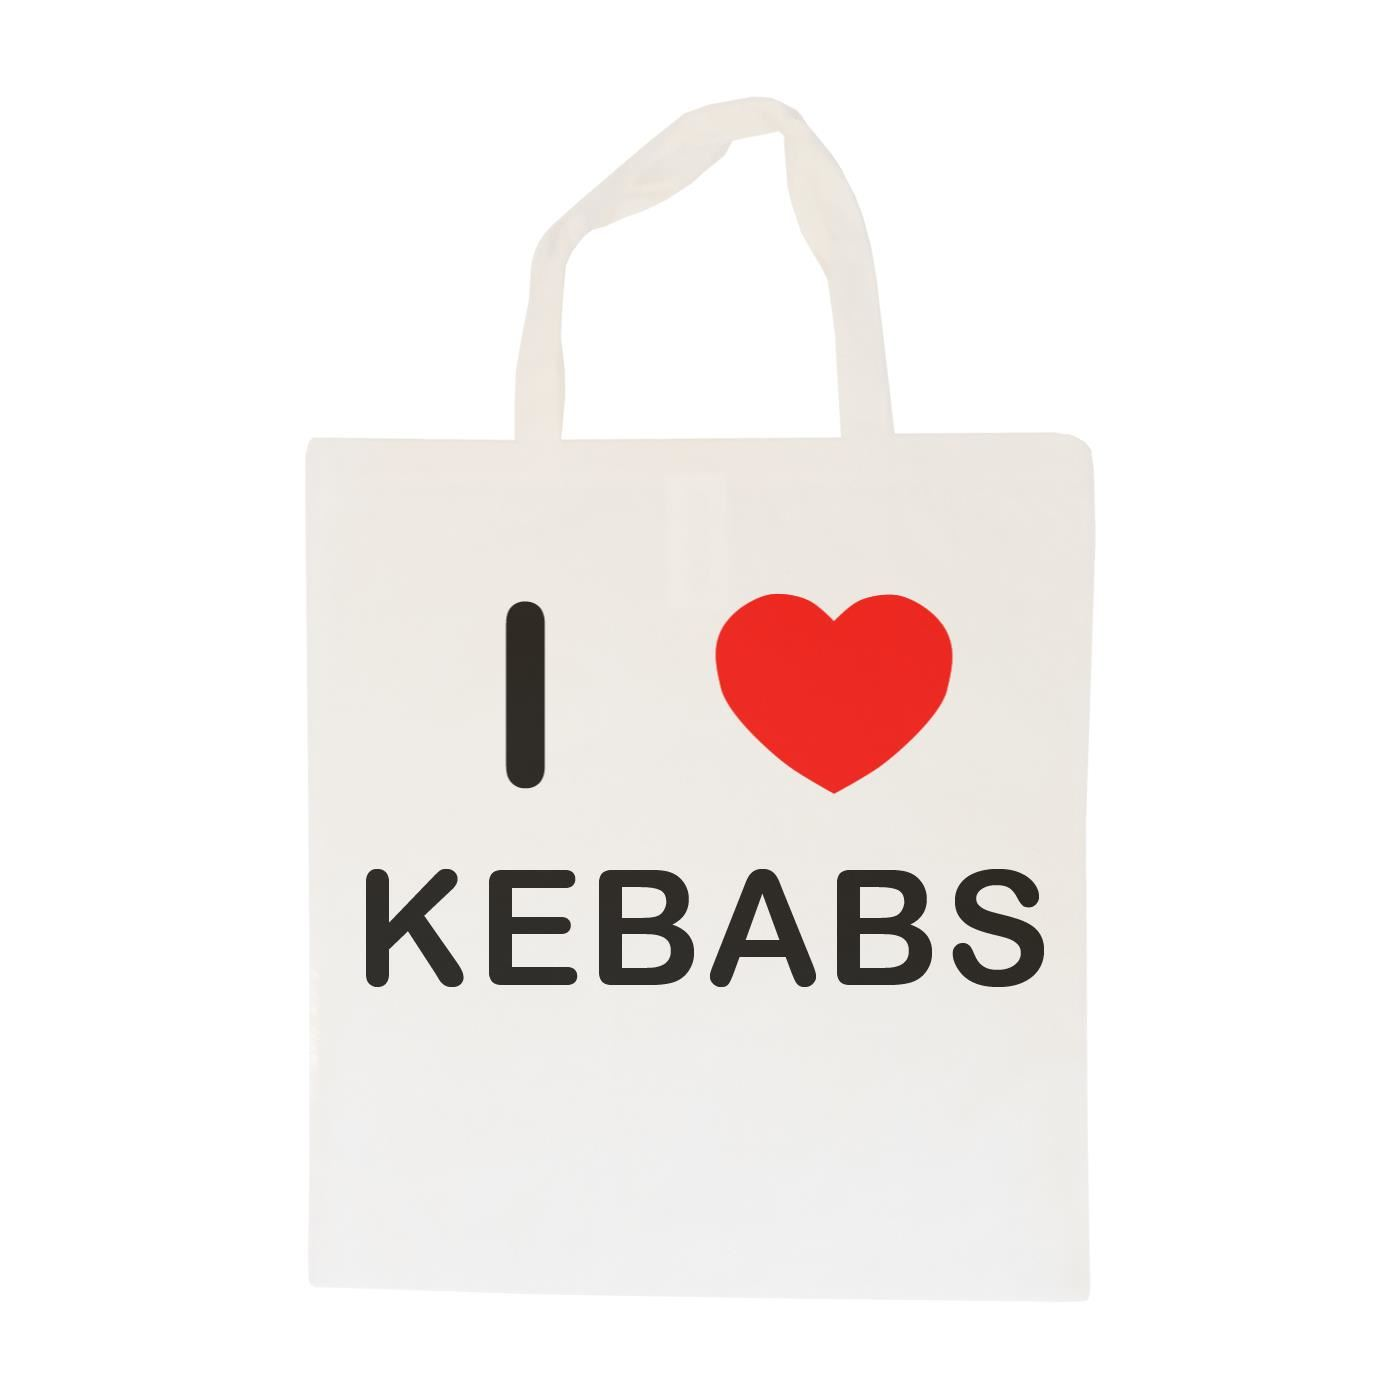 I Love Kebabs - Cotton Bag | Size choice Tote, Shopper or Sling